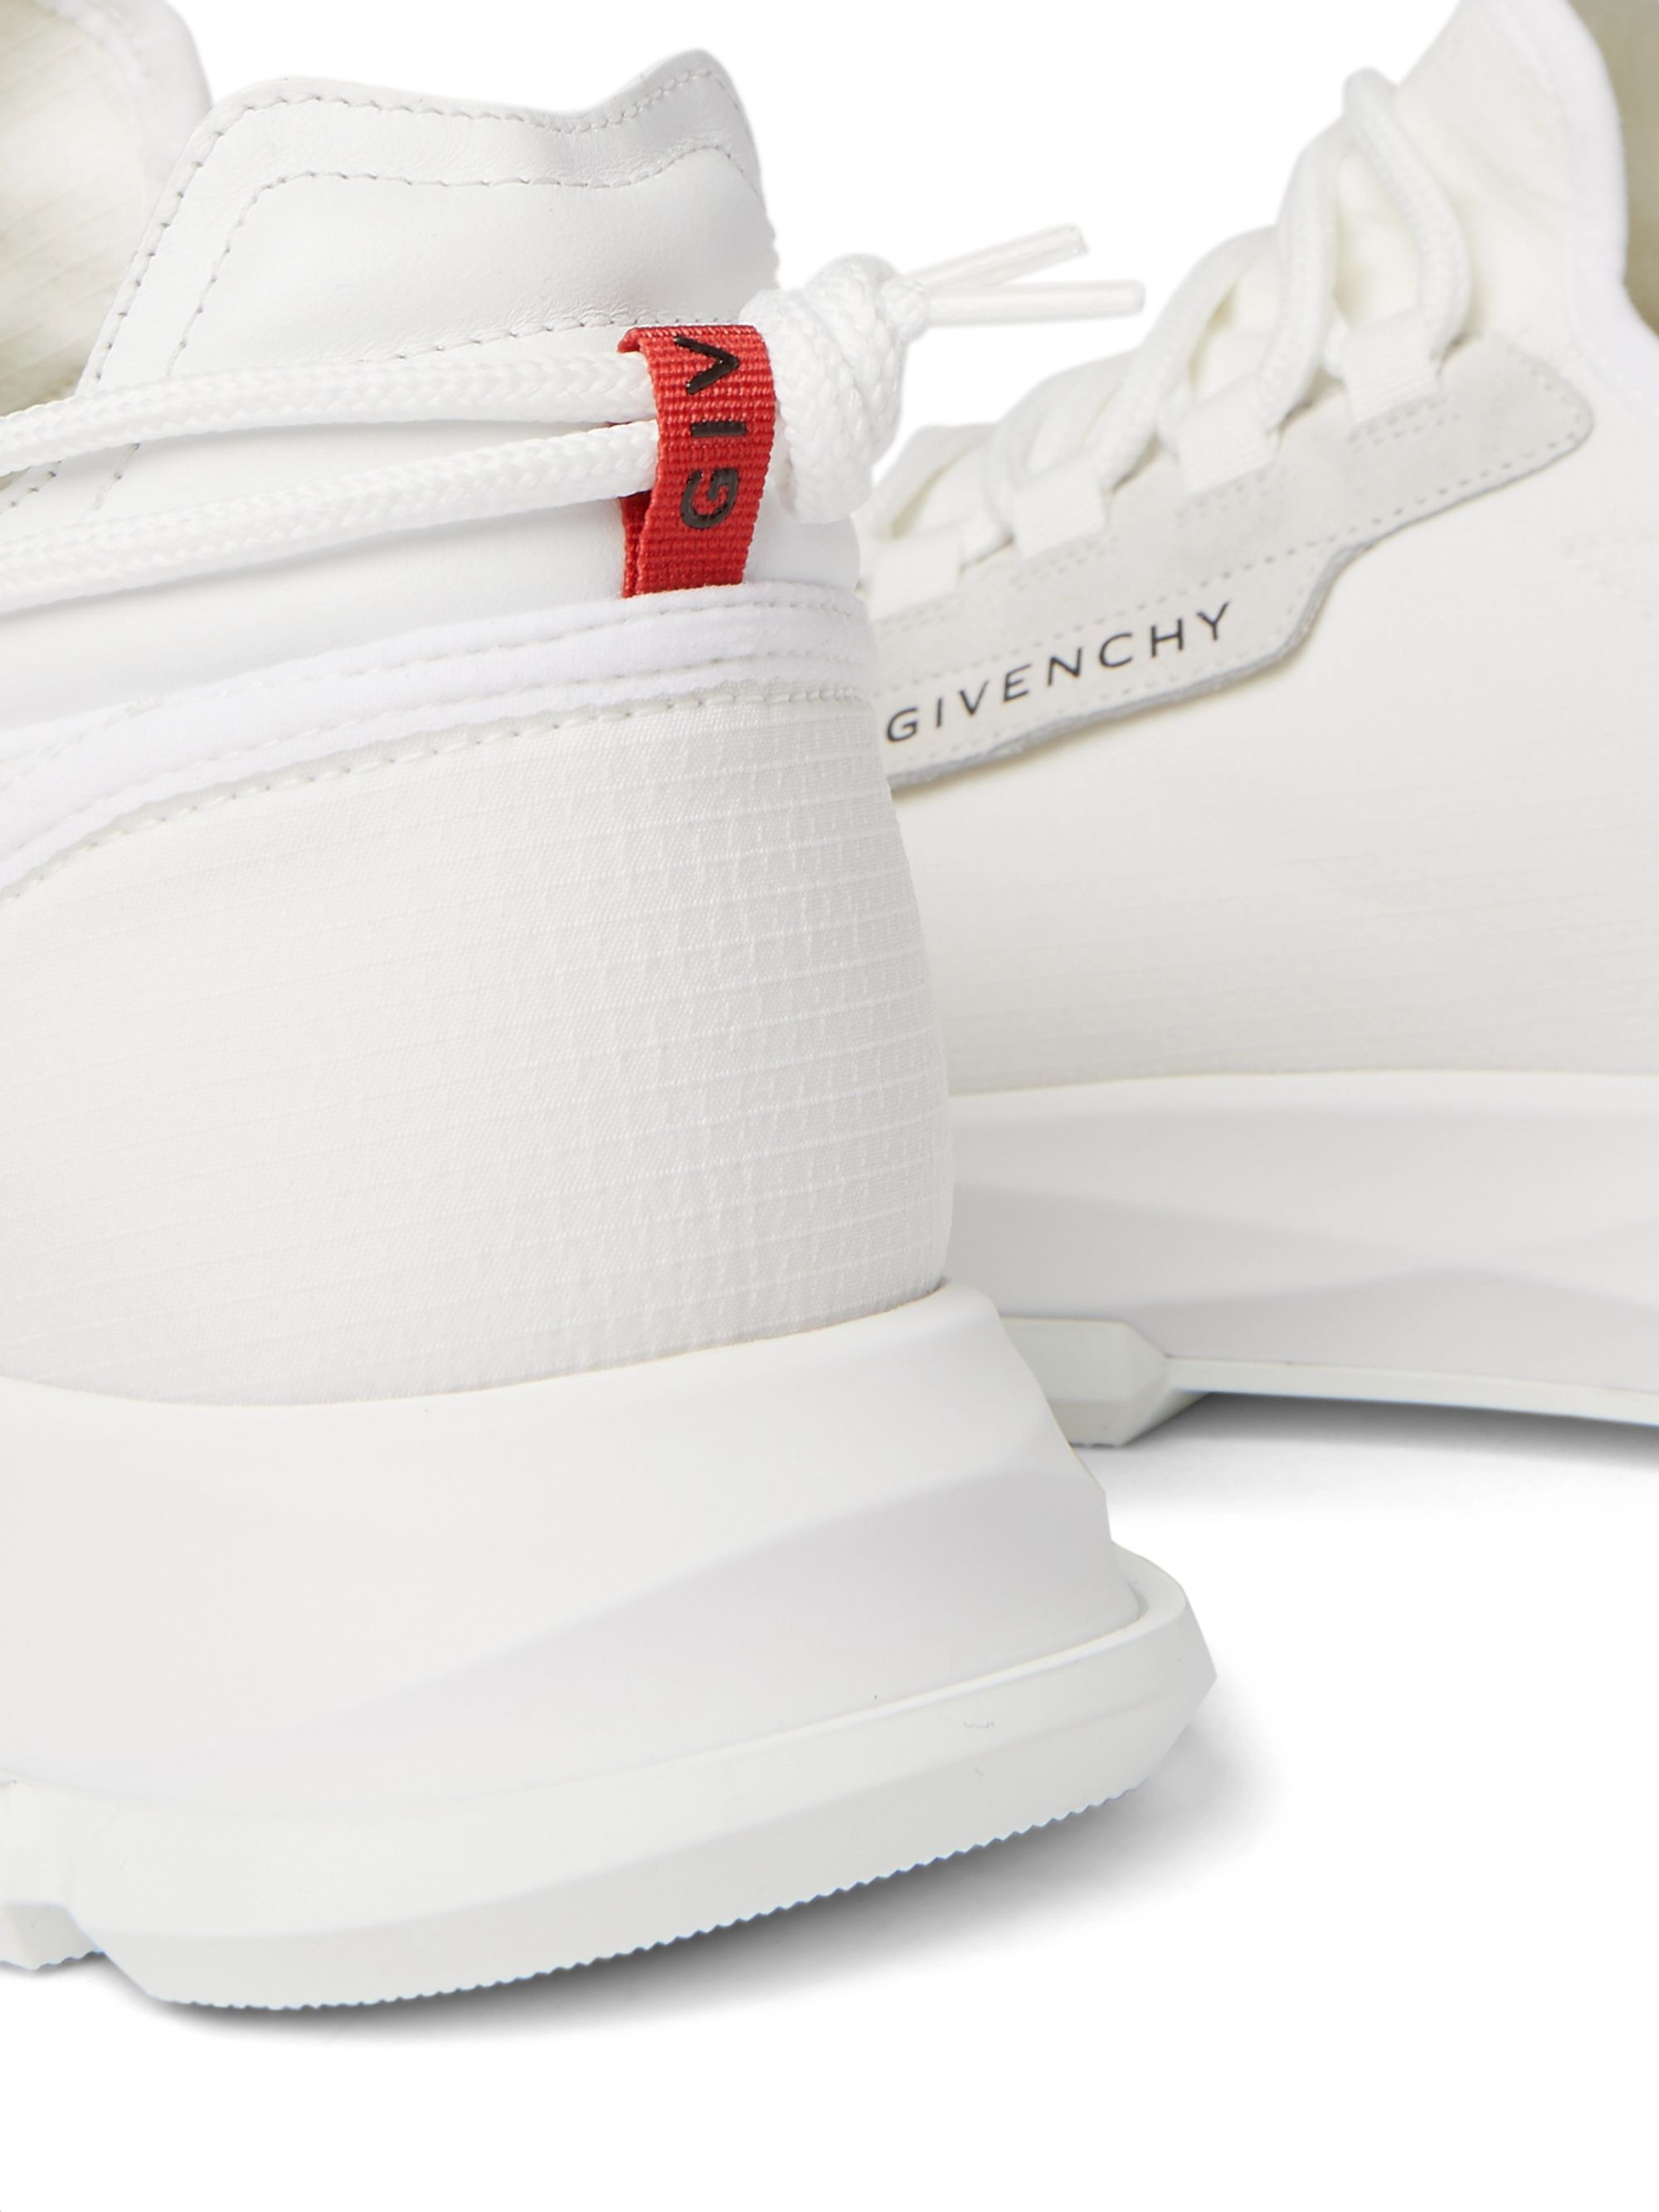 Givenchy Spectre Leather-Trimmed Neoprene Sneakers